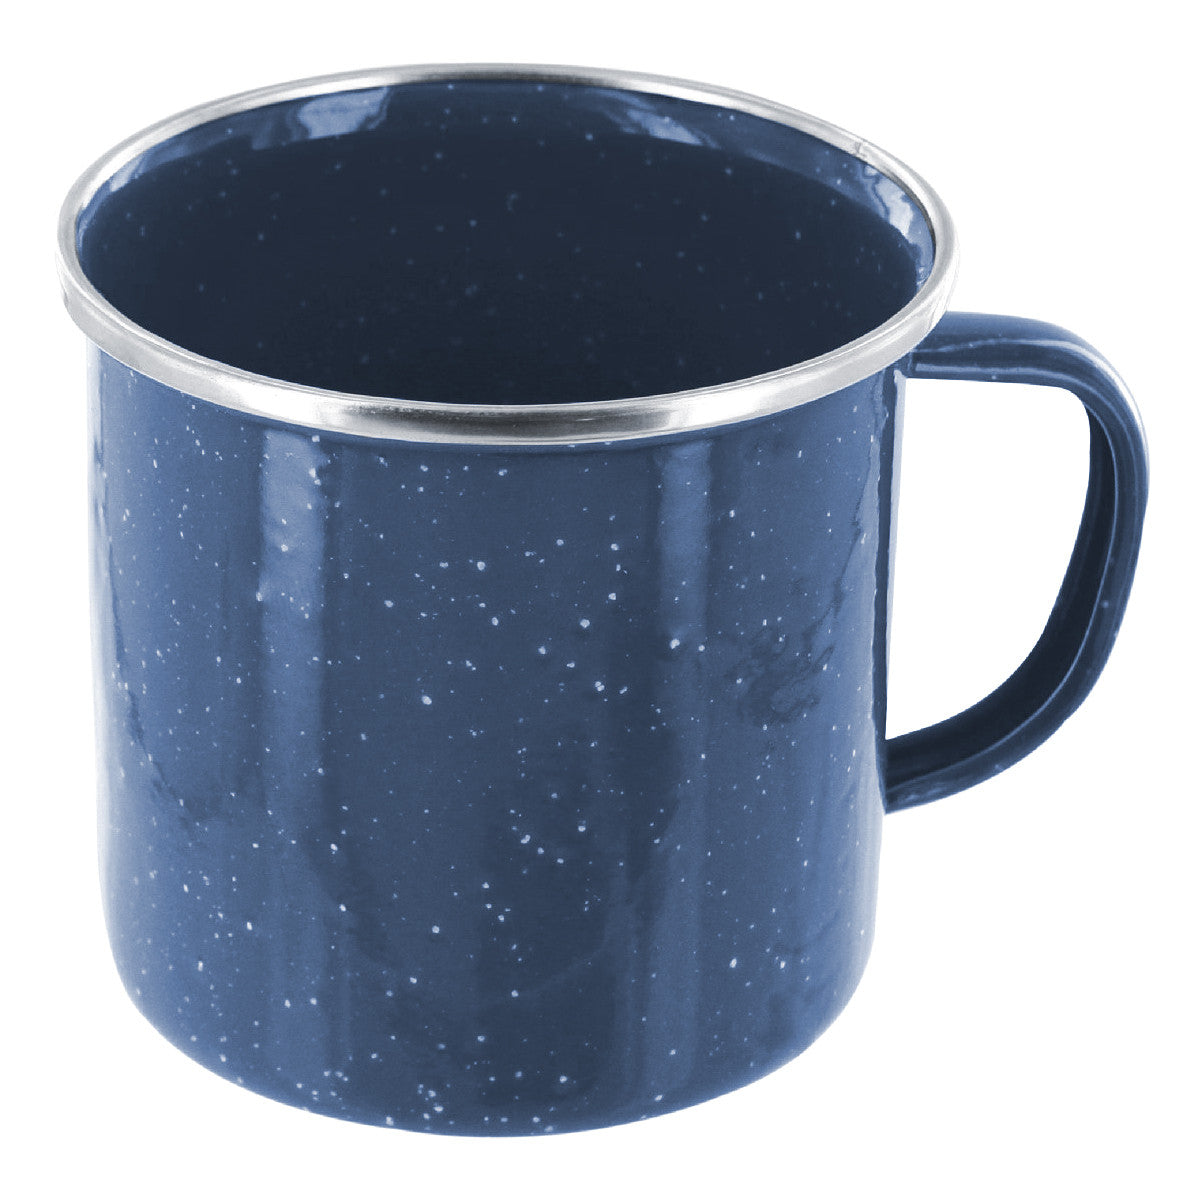 Highlander Enamel Mug 350ml Blue - Trailblazer Outdoors, Pickering